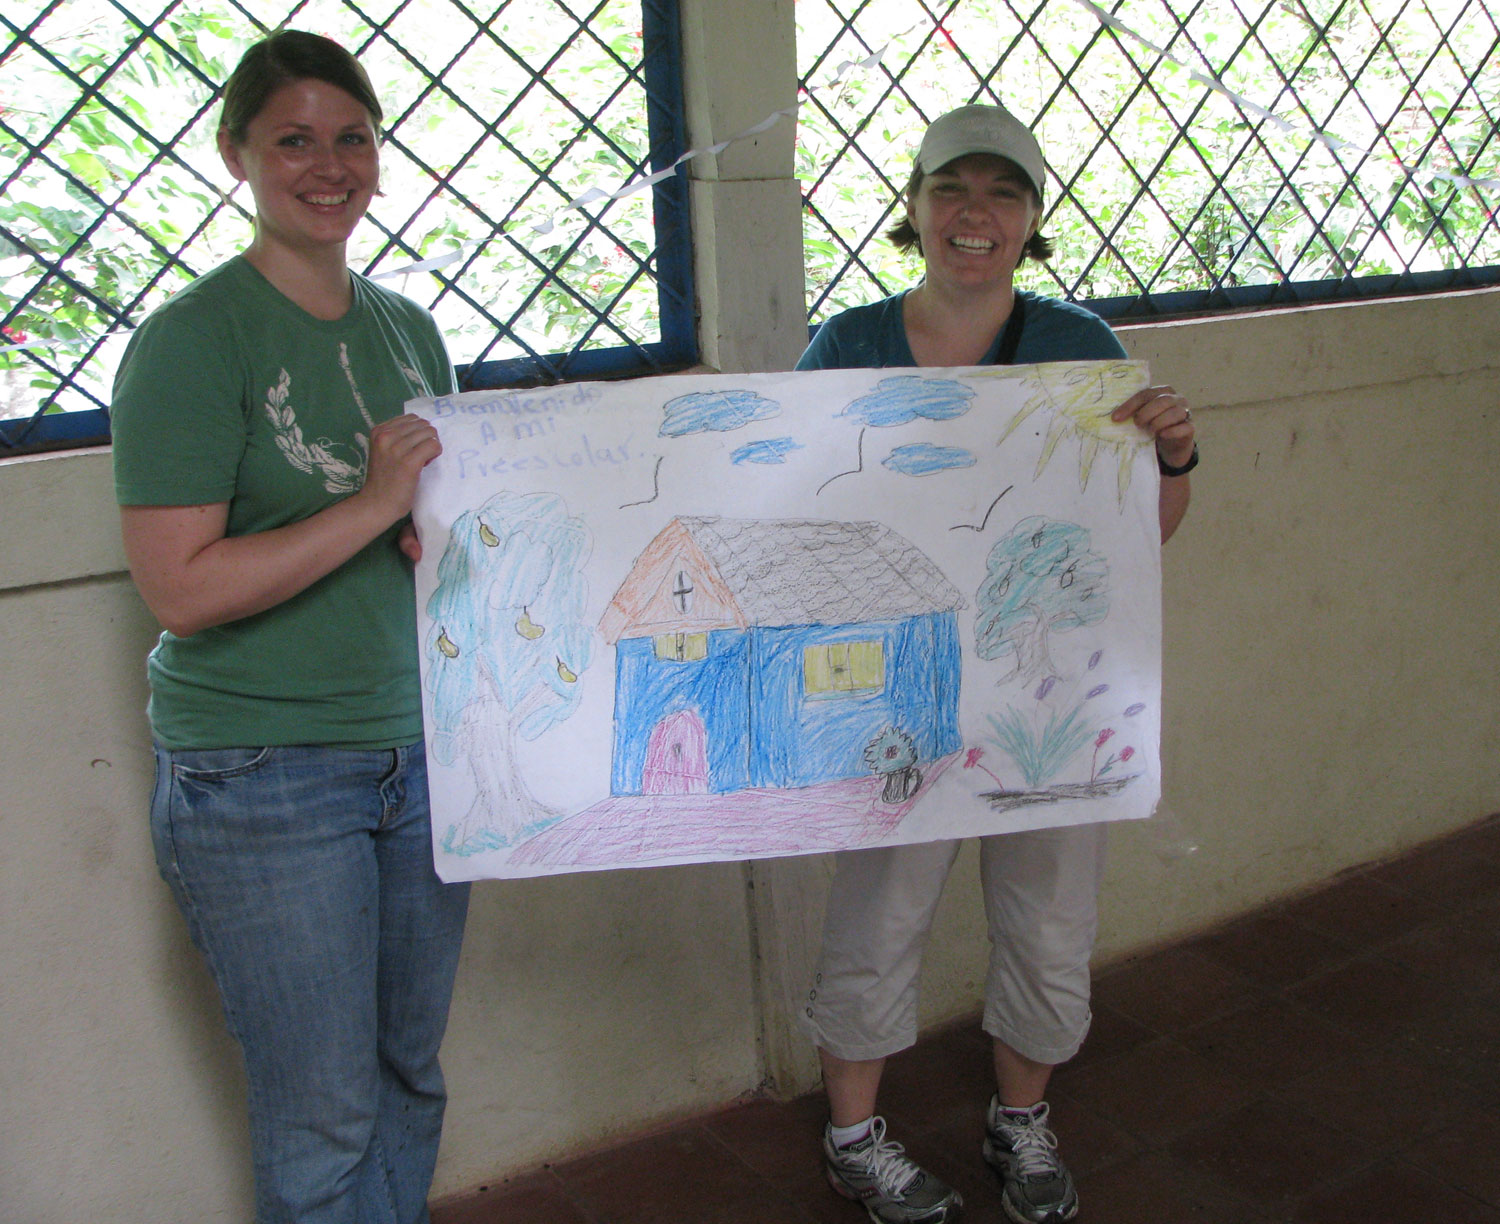 Bronwyn and Kristine pose with the drawing made by the preschool kids (3, 4, and 5 year olds)